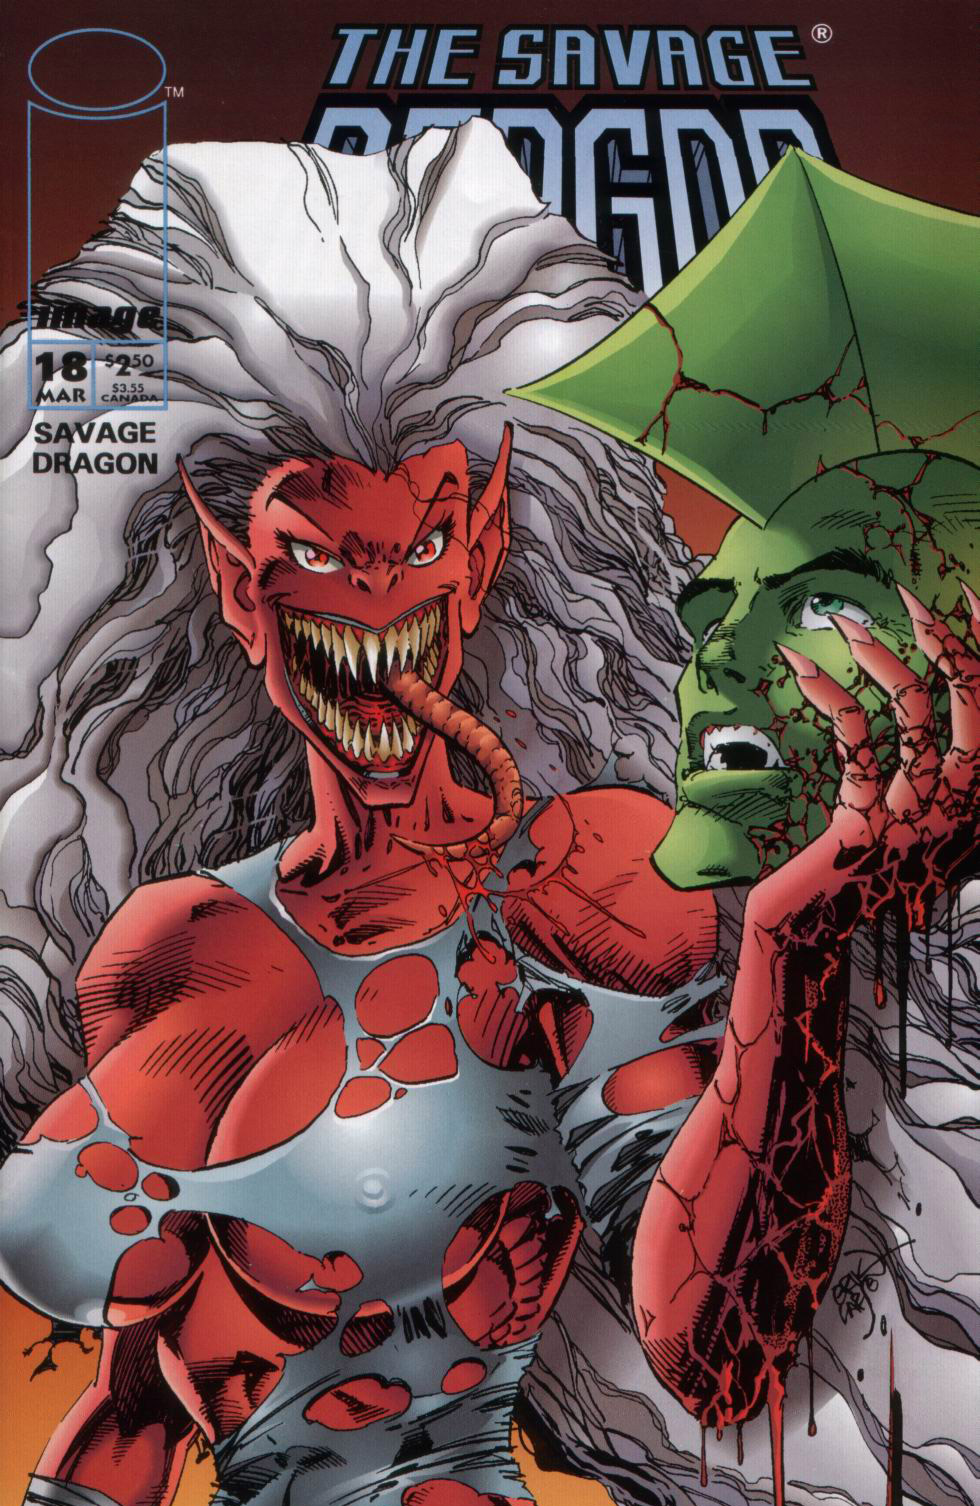 Cover Savage Dragon Vol.2 #18